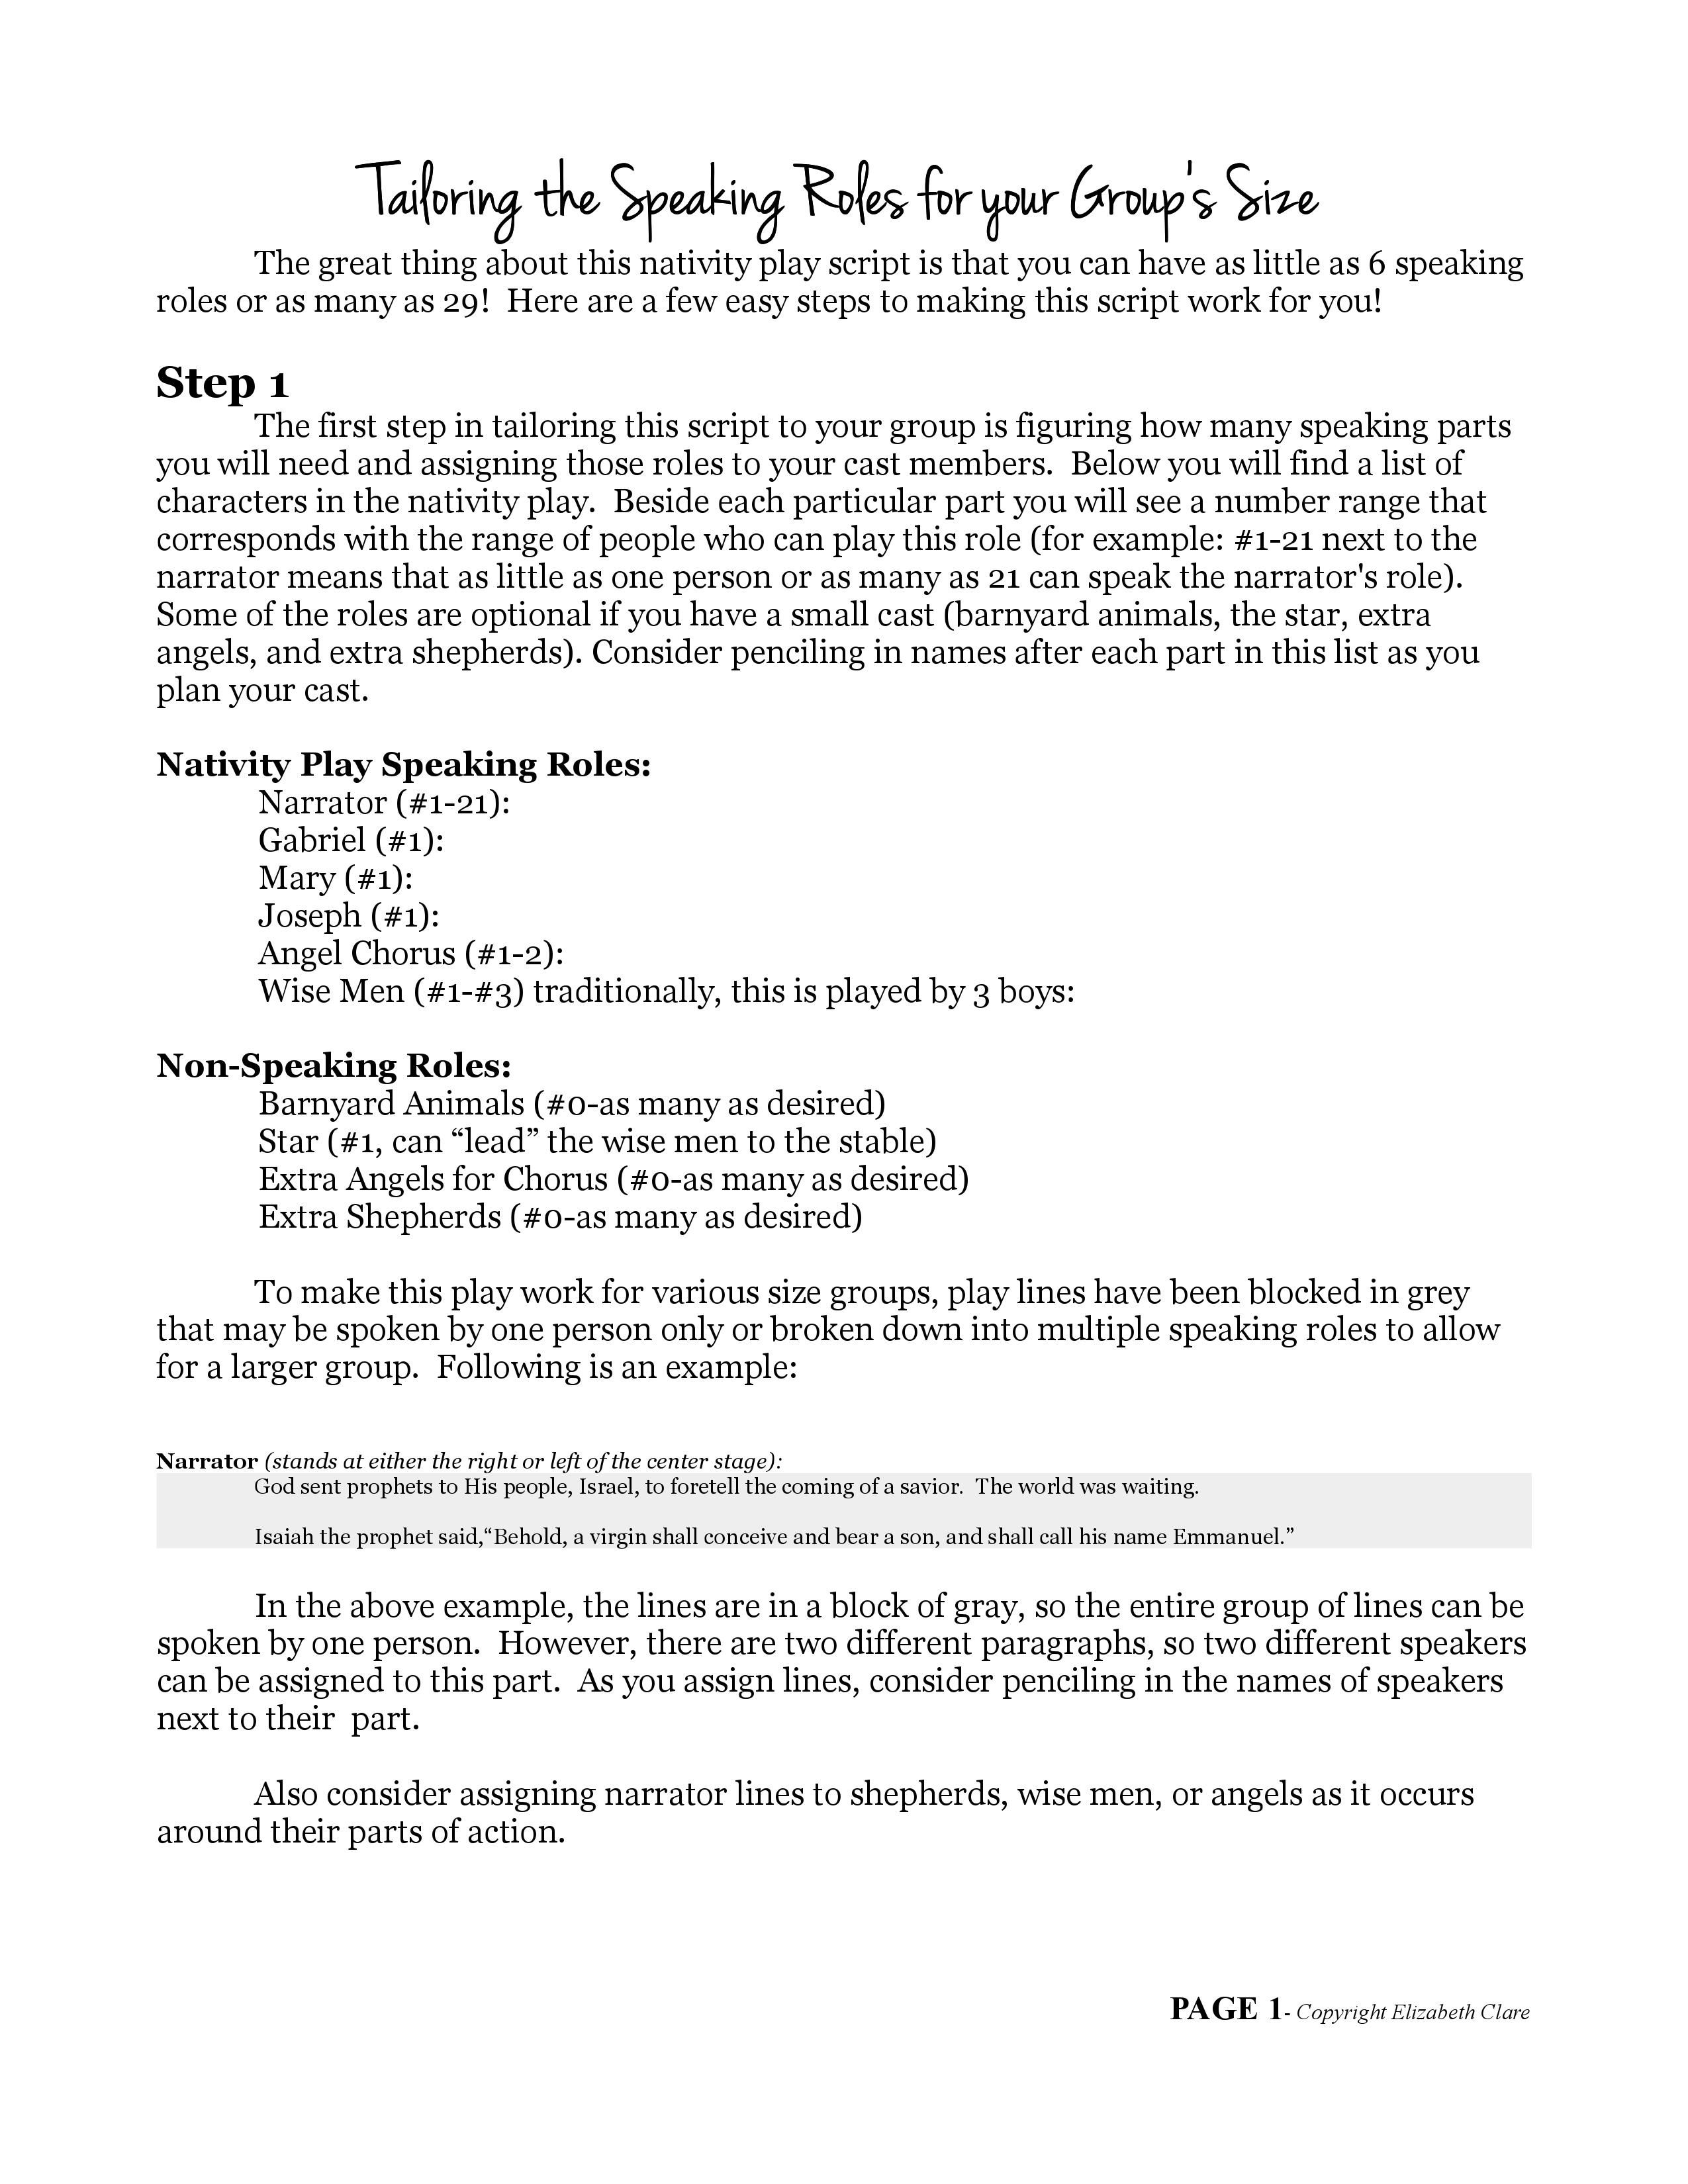 """O Come Emmanuel"""": A Nativity Play Script 